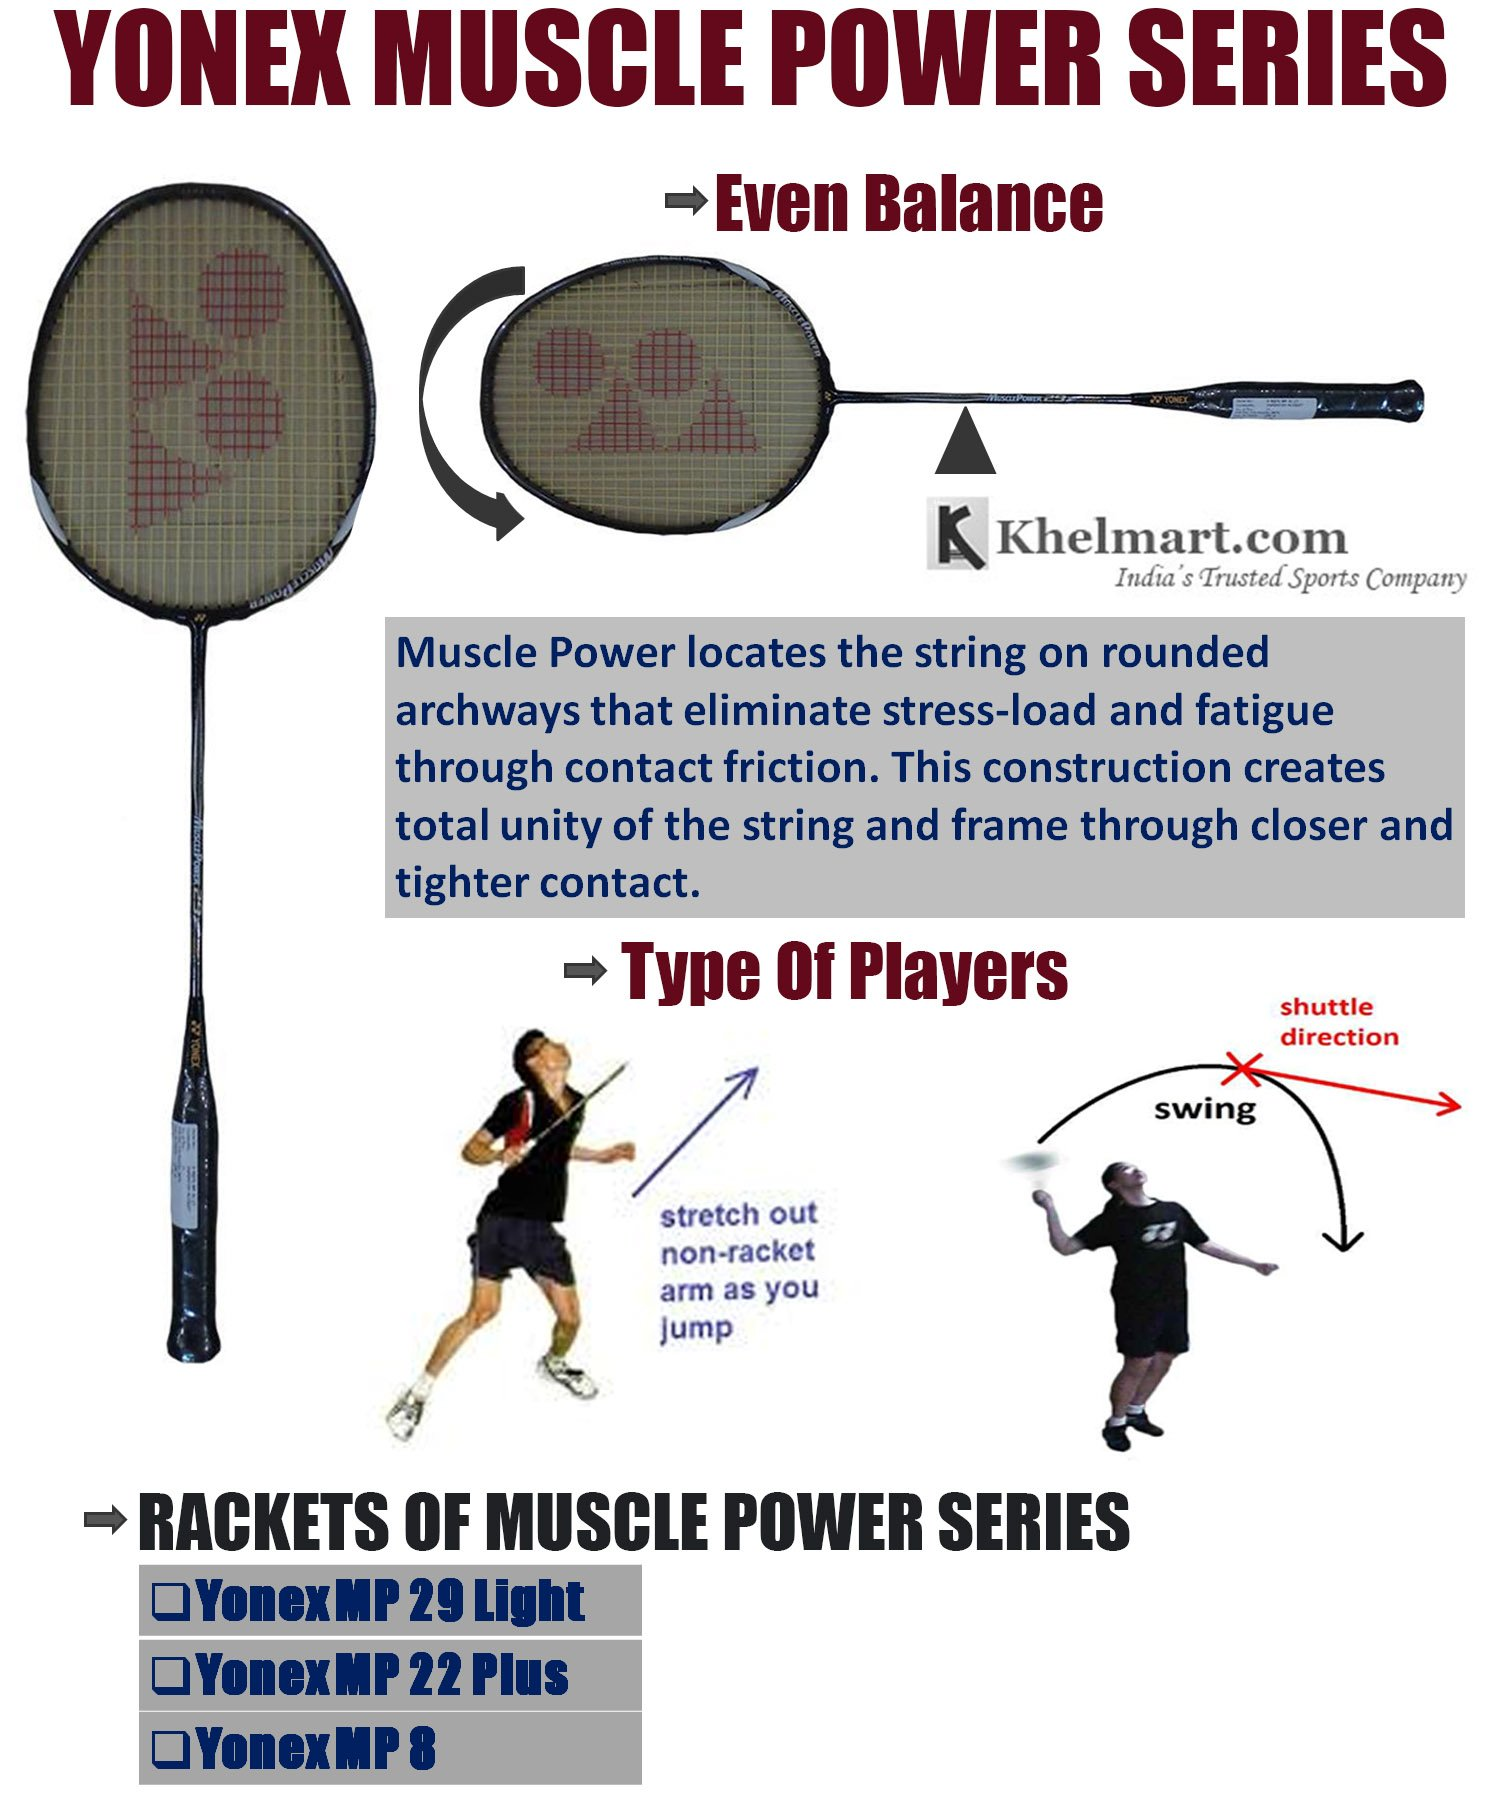 YONEX_MUSCLE_POWER_SERIES.jpg